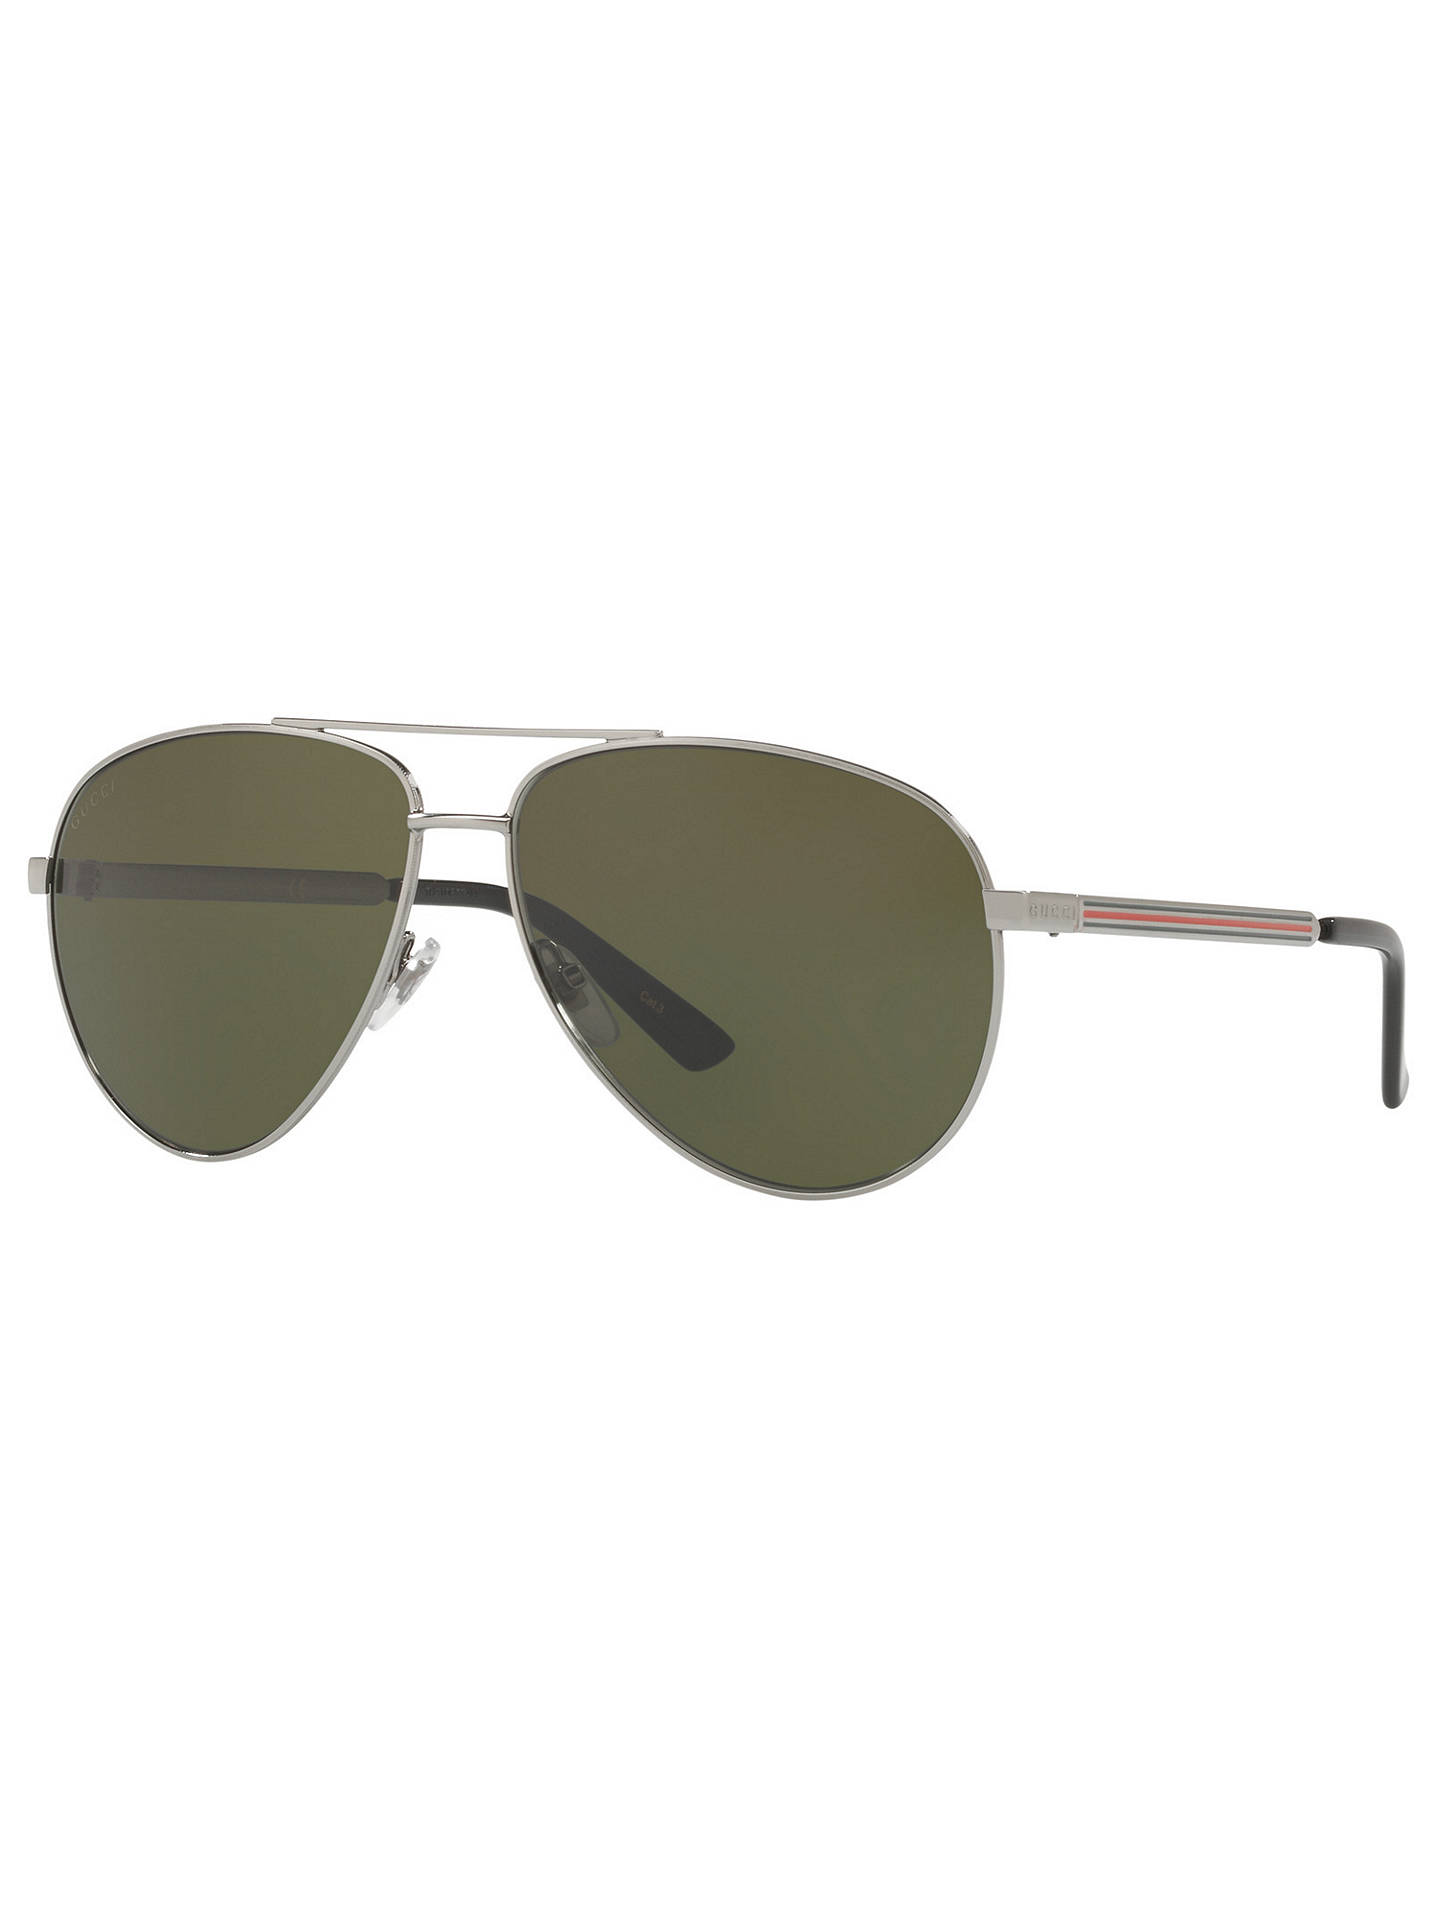 8e69583cfa62b Gucci GG0137S Aviator Sunglasses at John Lewis   Partners